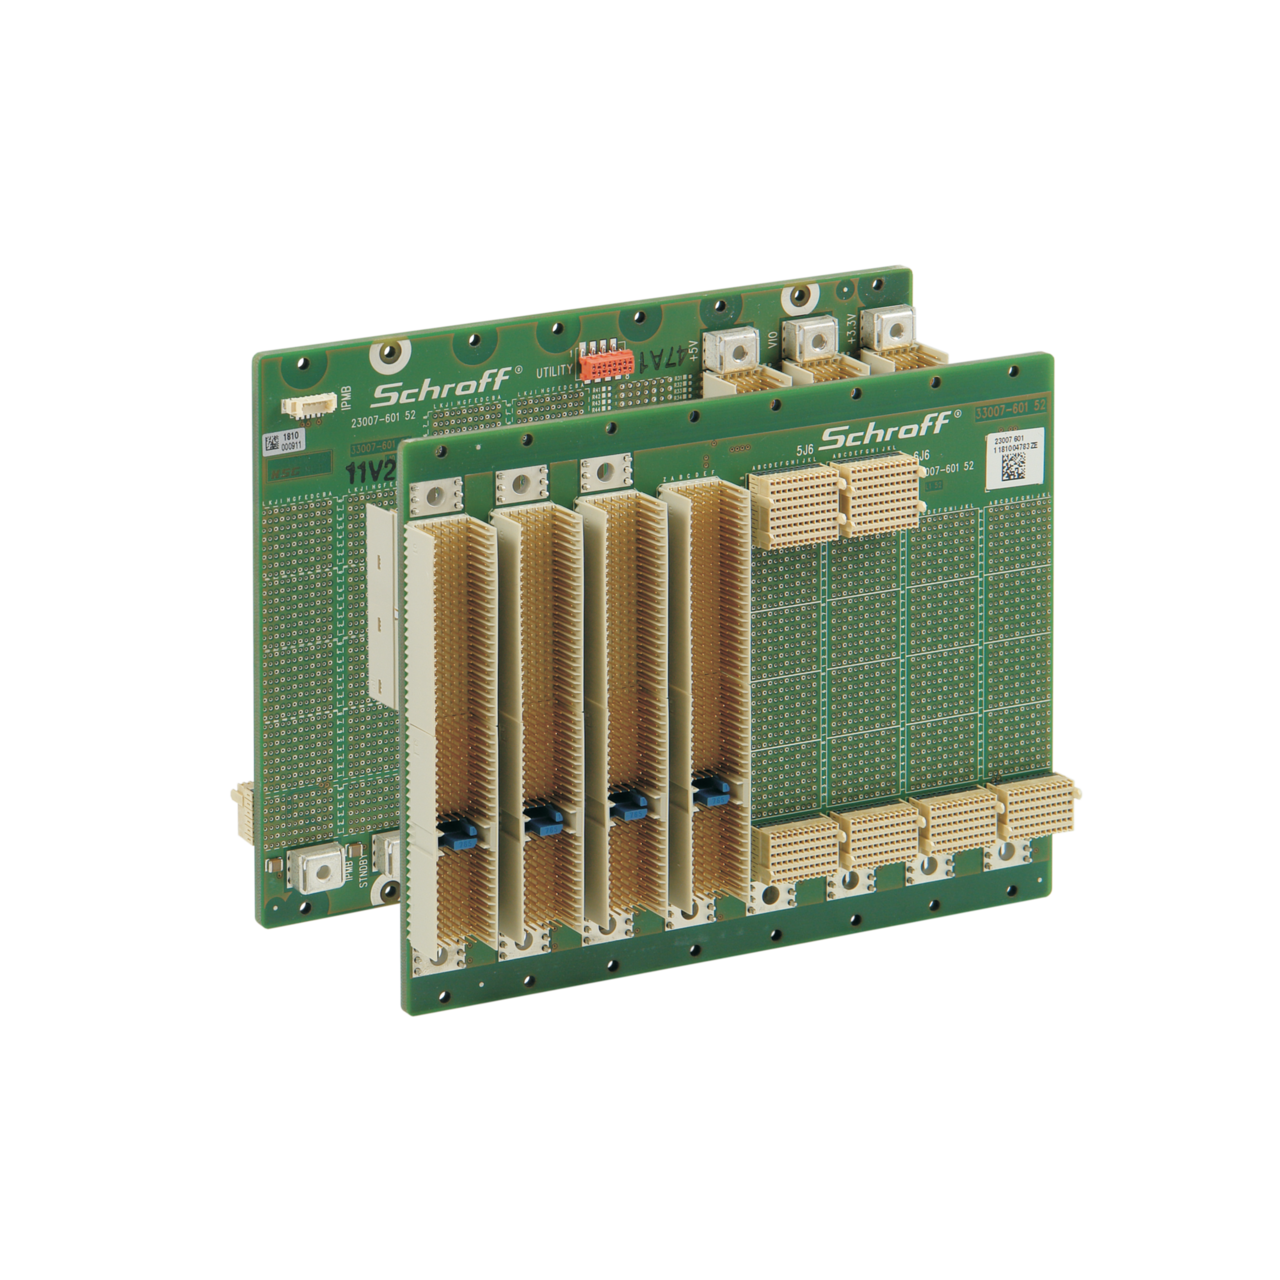 Image for CompactPCI PlusIO backplanes from nVent SCHROFF | Europe, Middle East, Africa and India